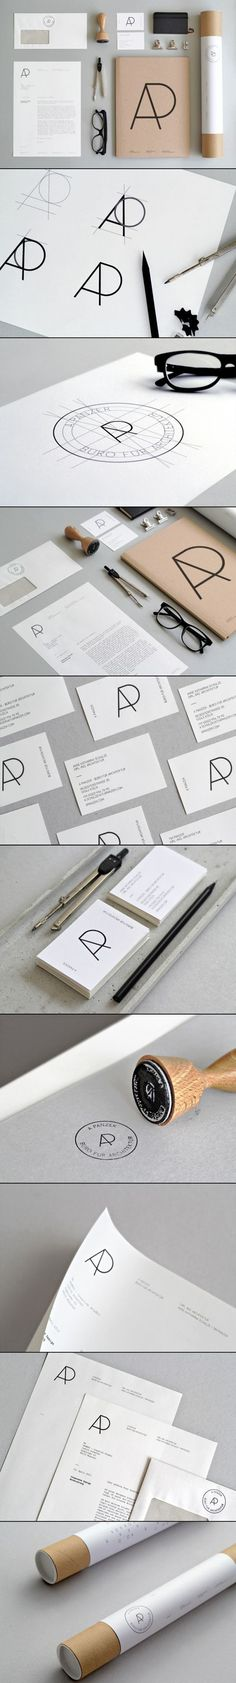 A Panzer, Büro für Architektur Brand Identity via Design made in Germany.: